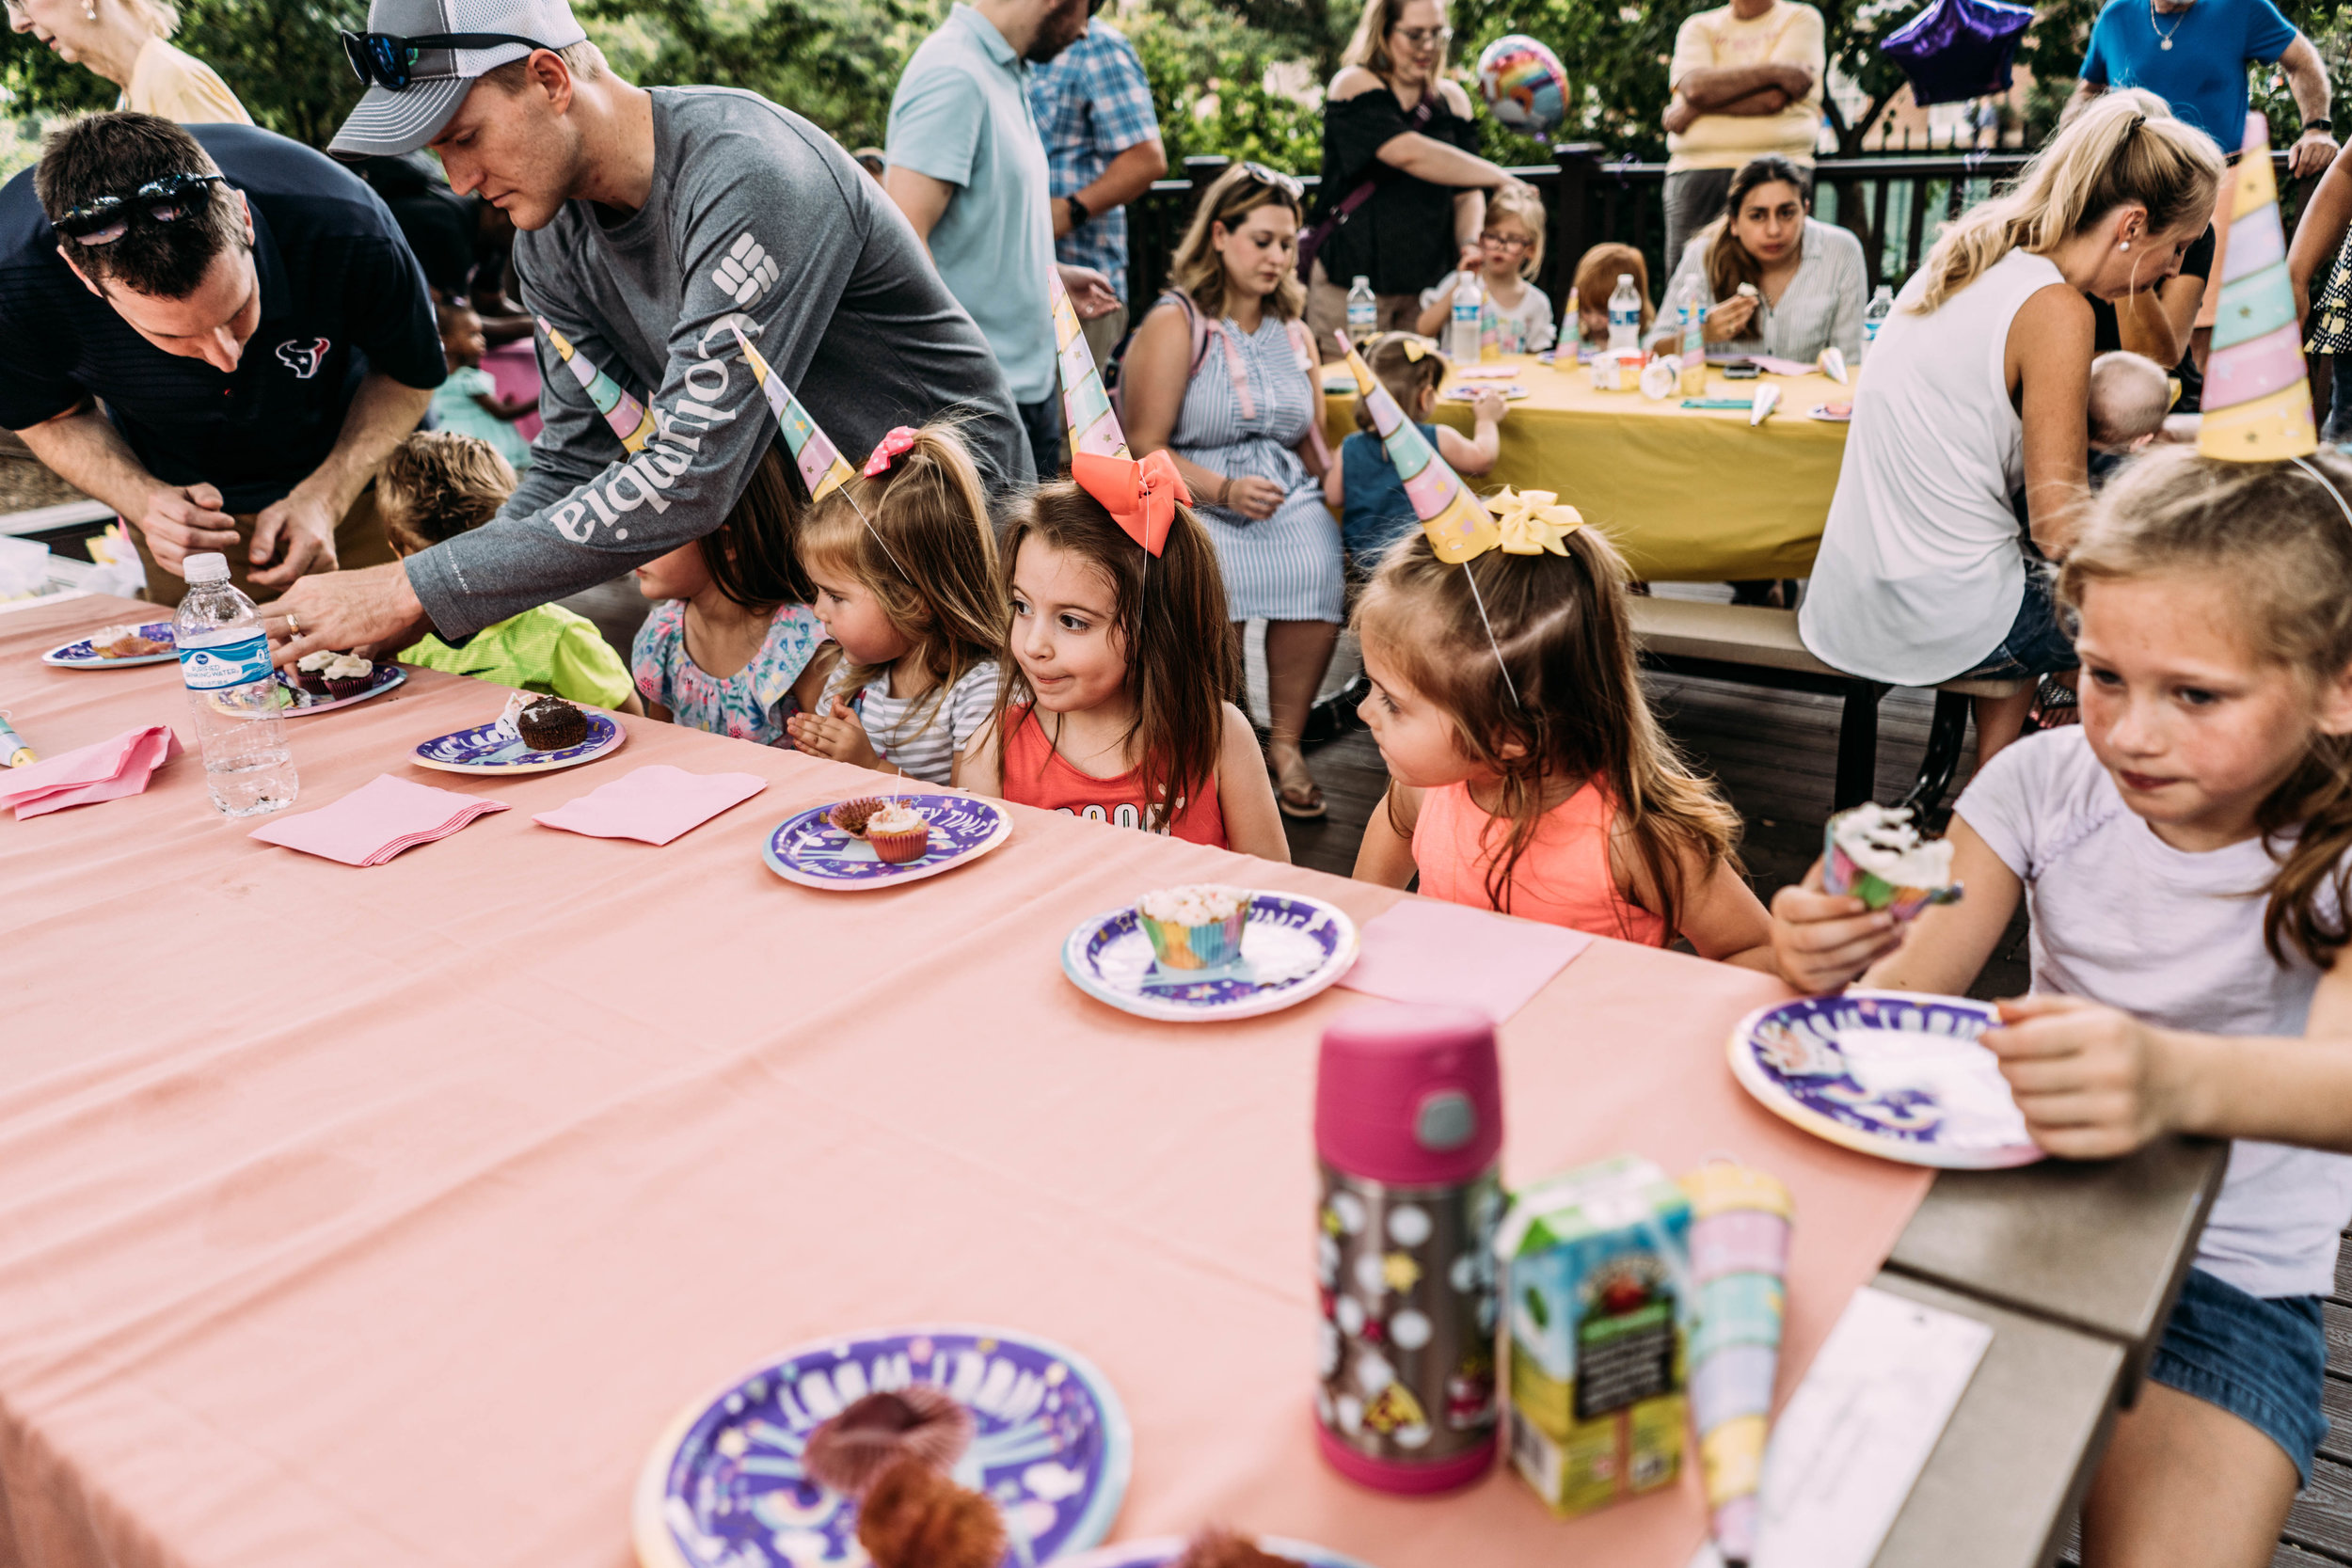 birthday party at the park-27.jpg